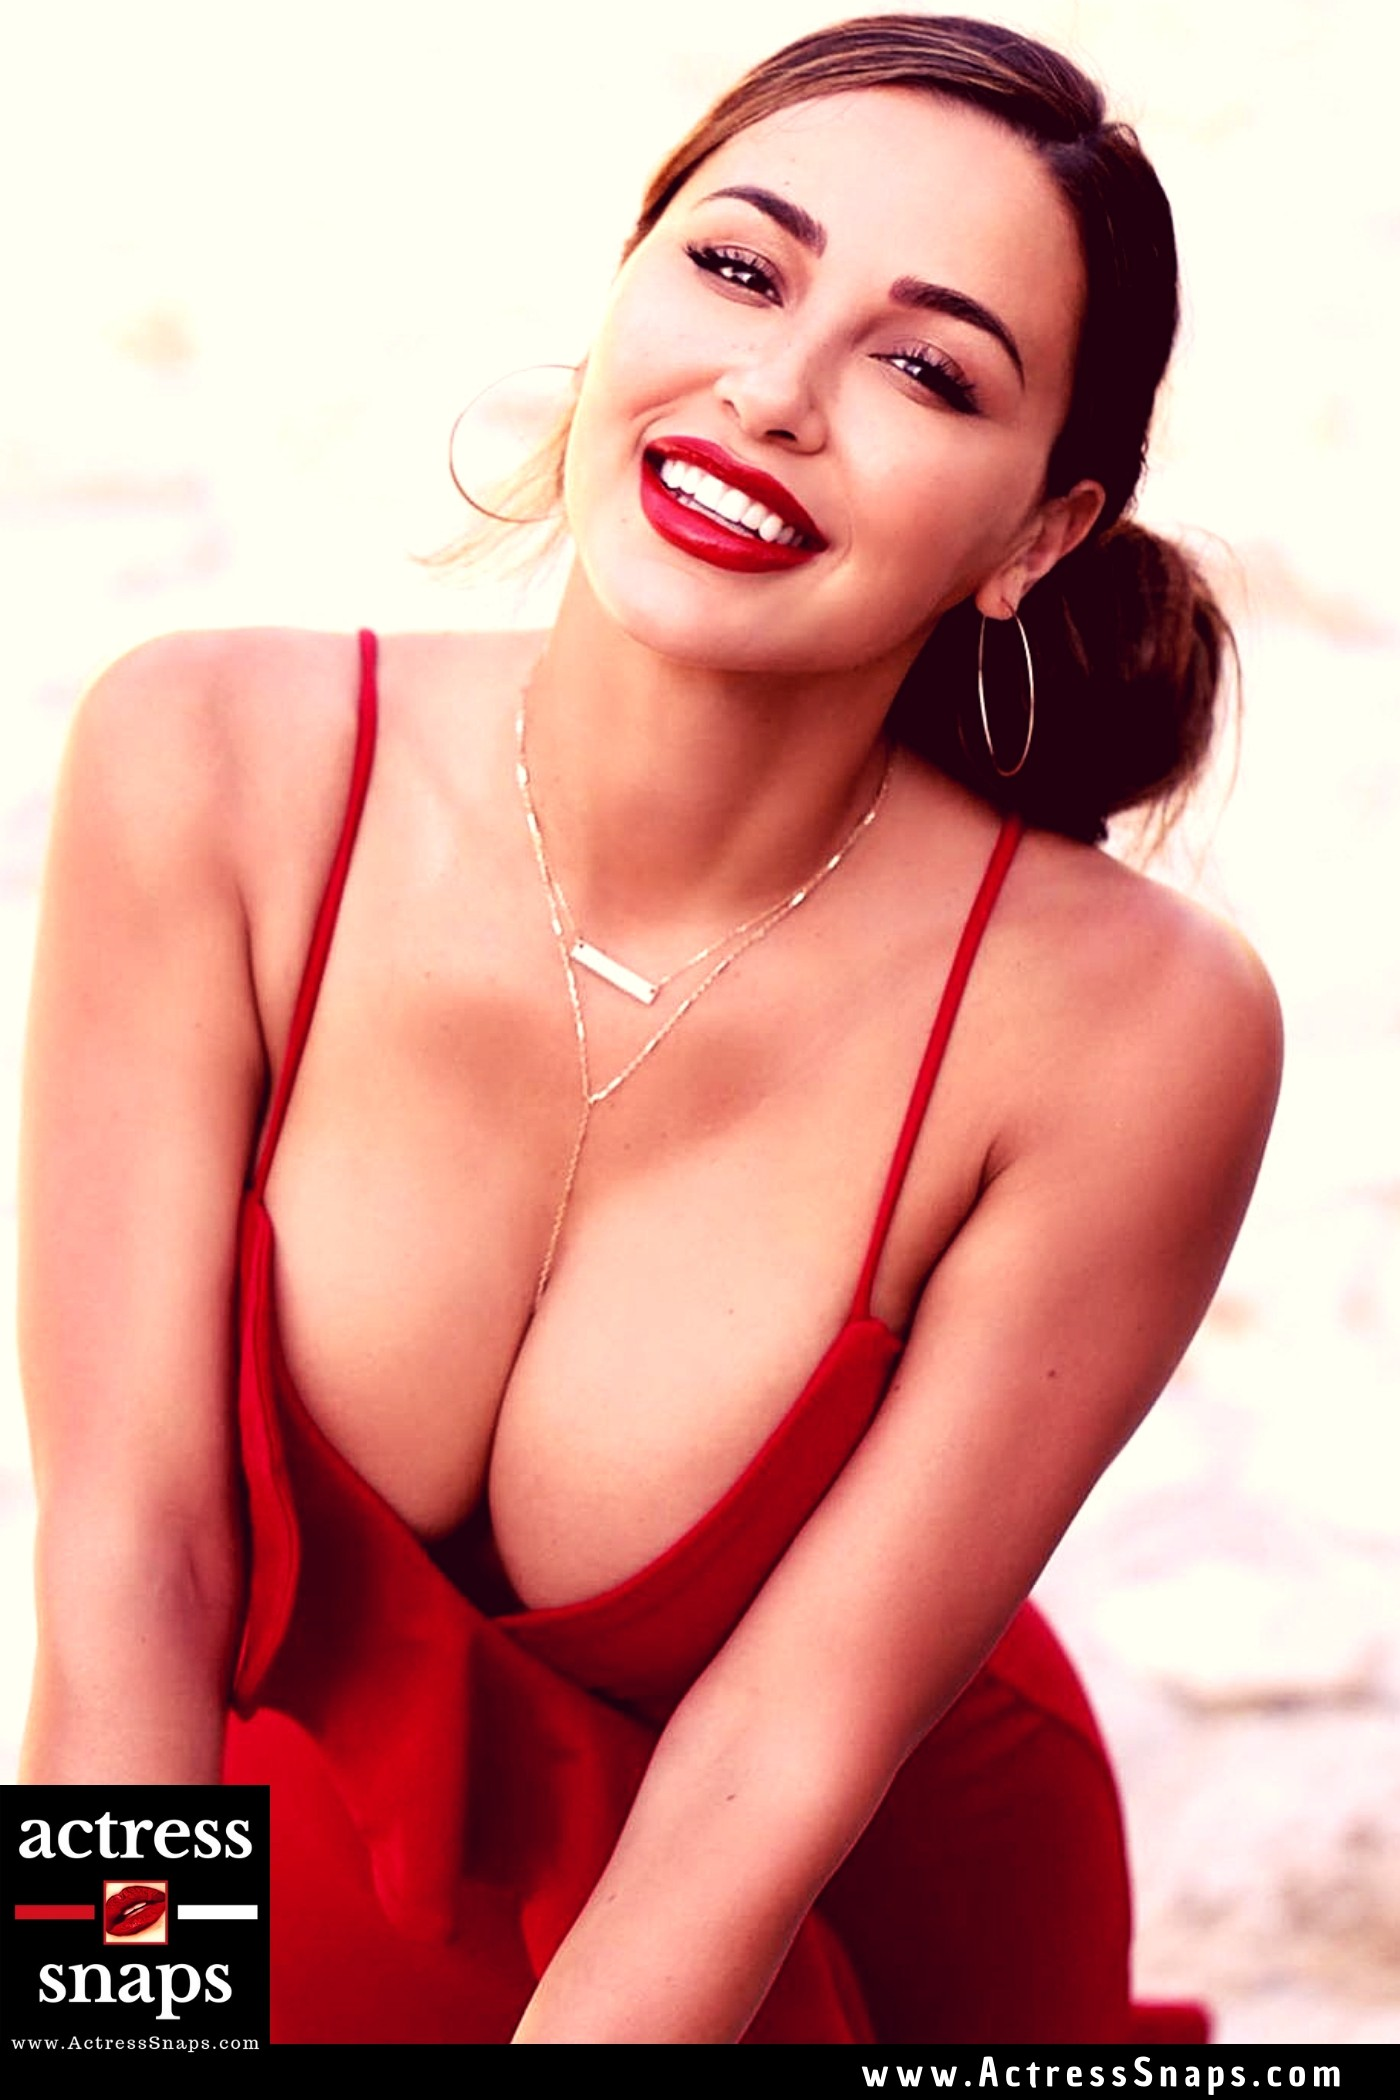 Sexy Ana Cheri in Red Dress - Sexy Actress Pictures   Hot Actress Pictures - ActressSnaps.com